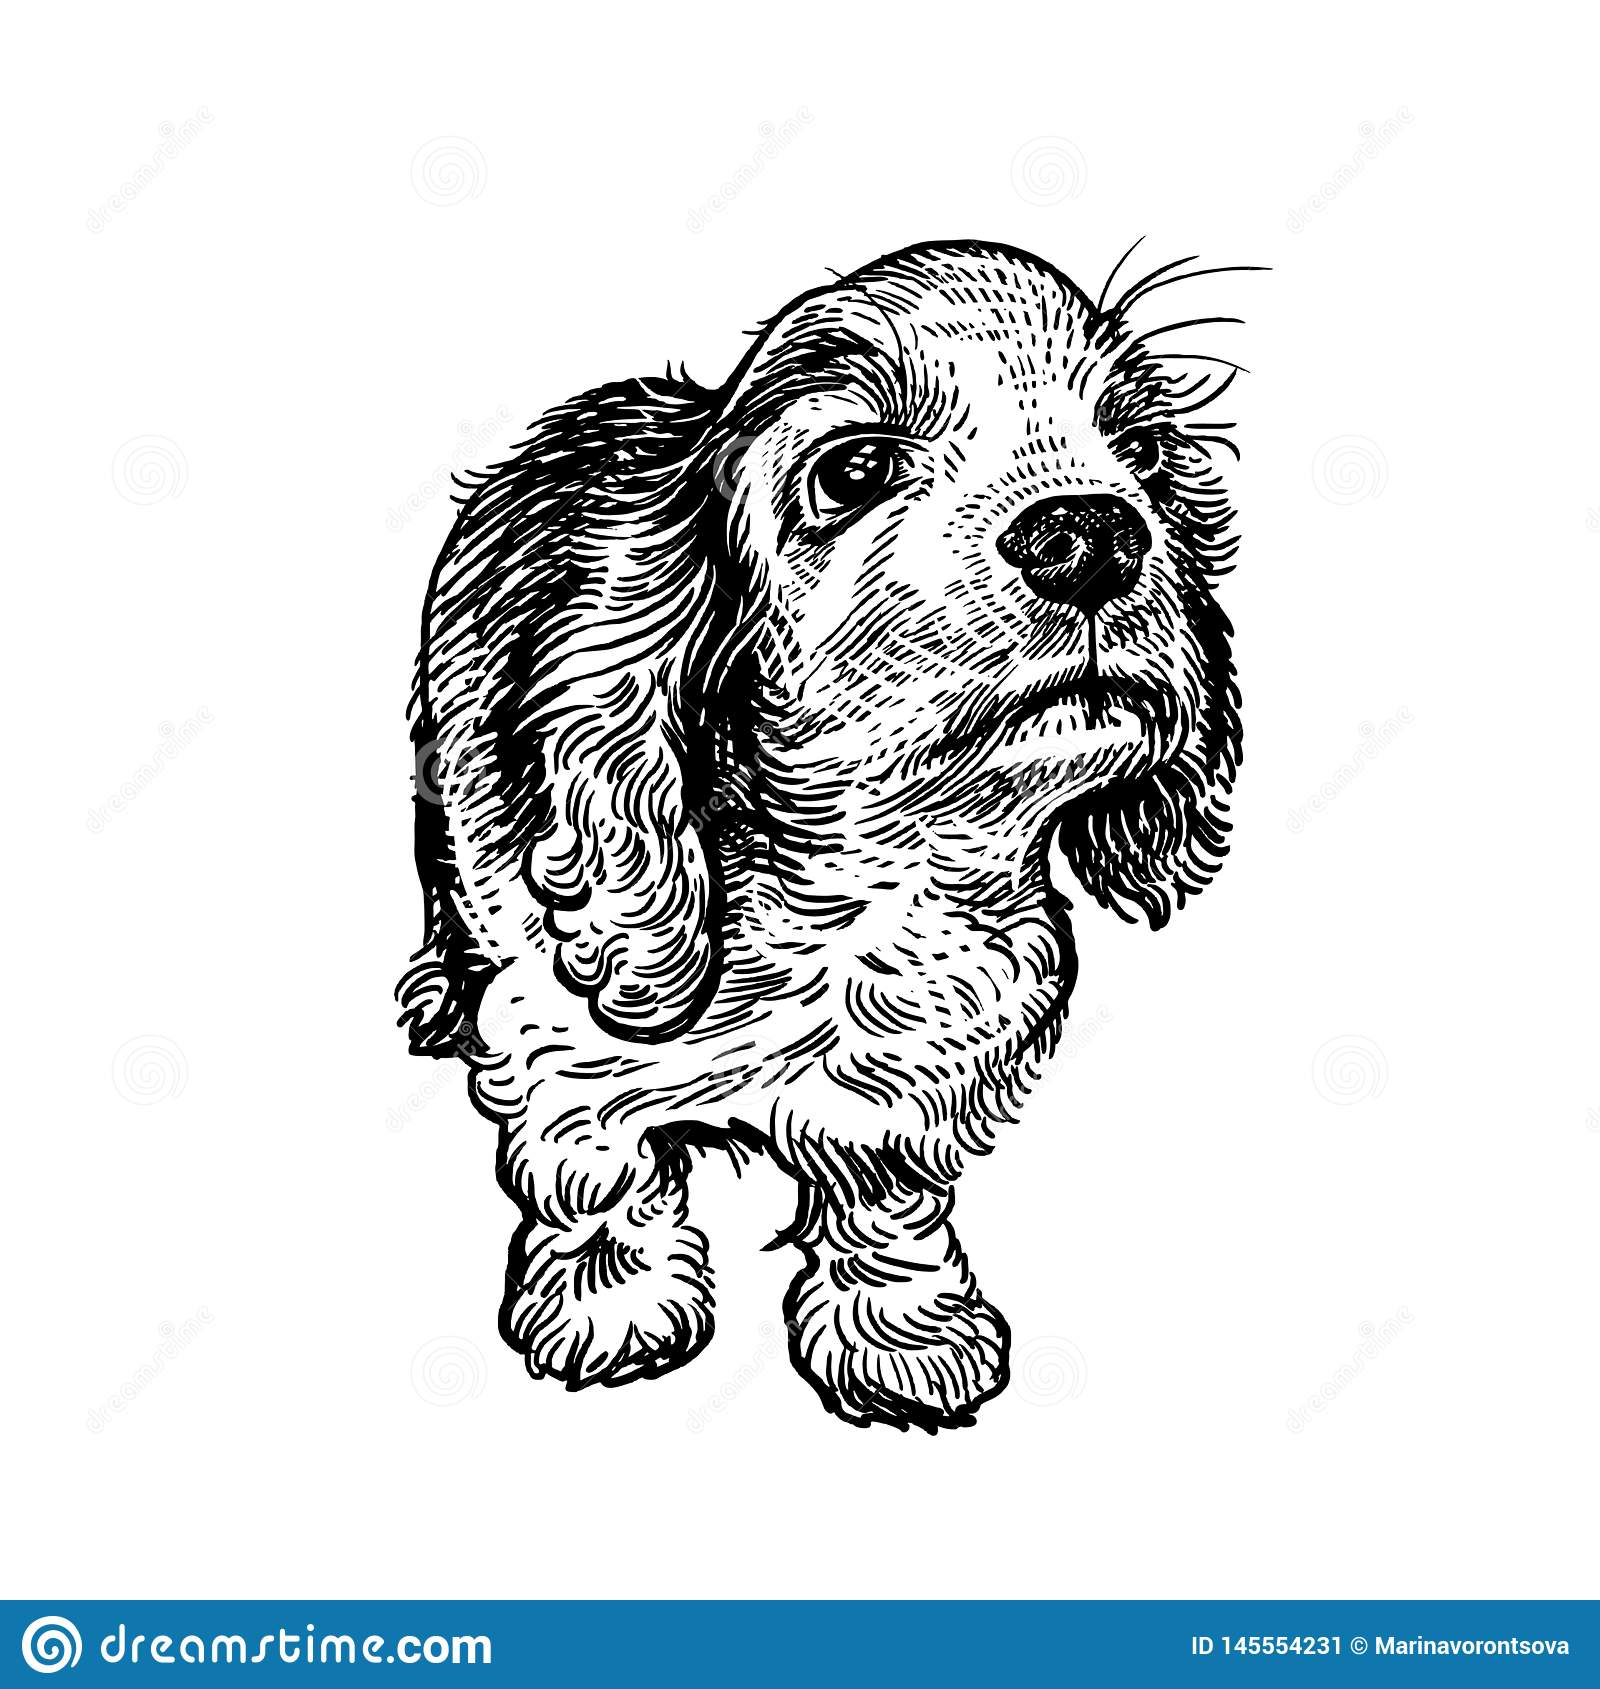 Spaniel Dog Cute Puppy Black And White Hand Drawing Stock Vector Illustration Of Baby Asleep 145554231